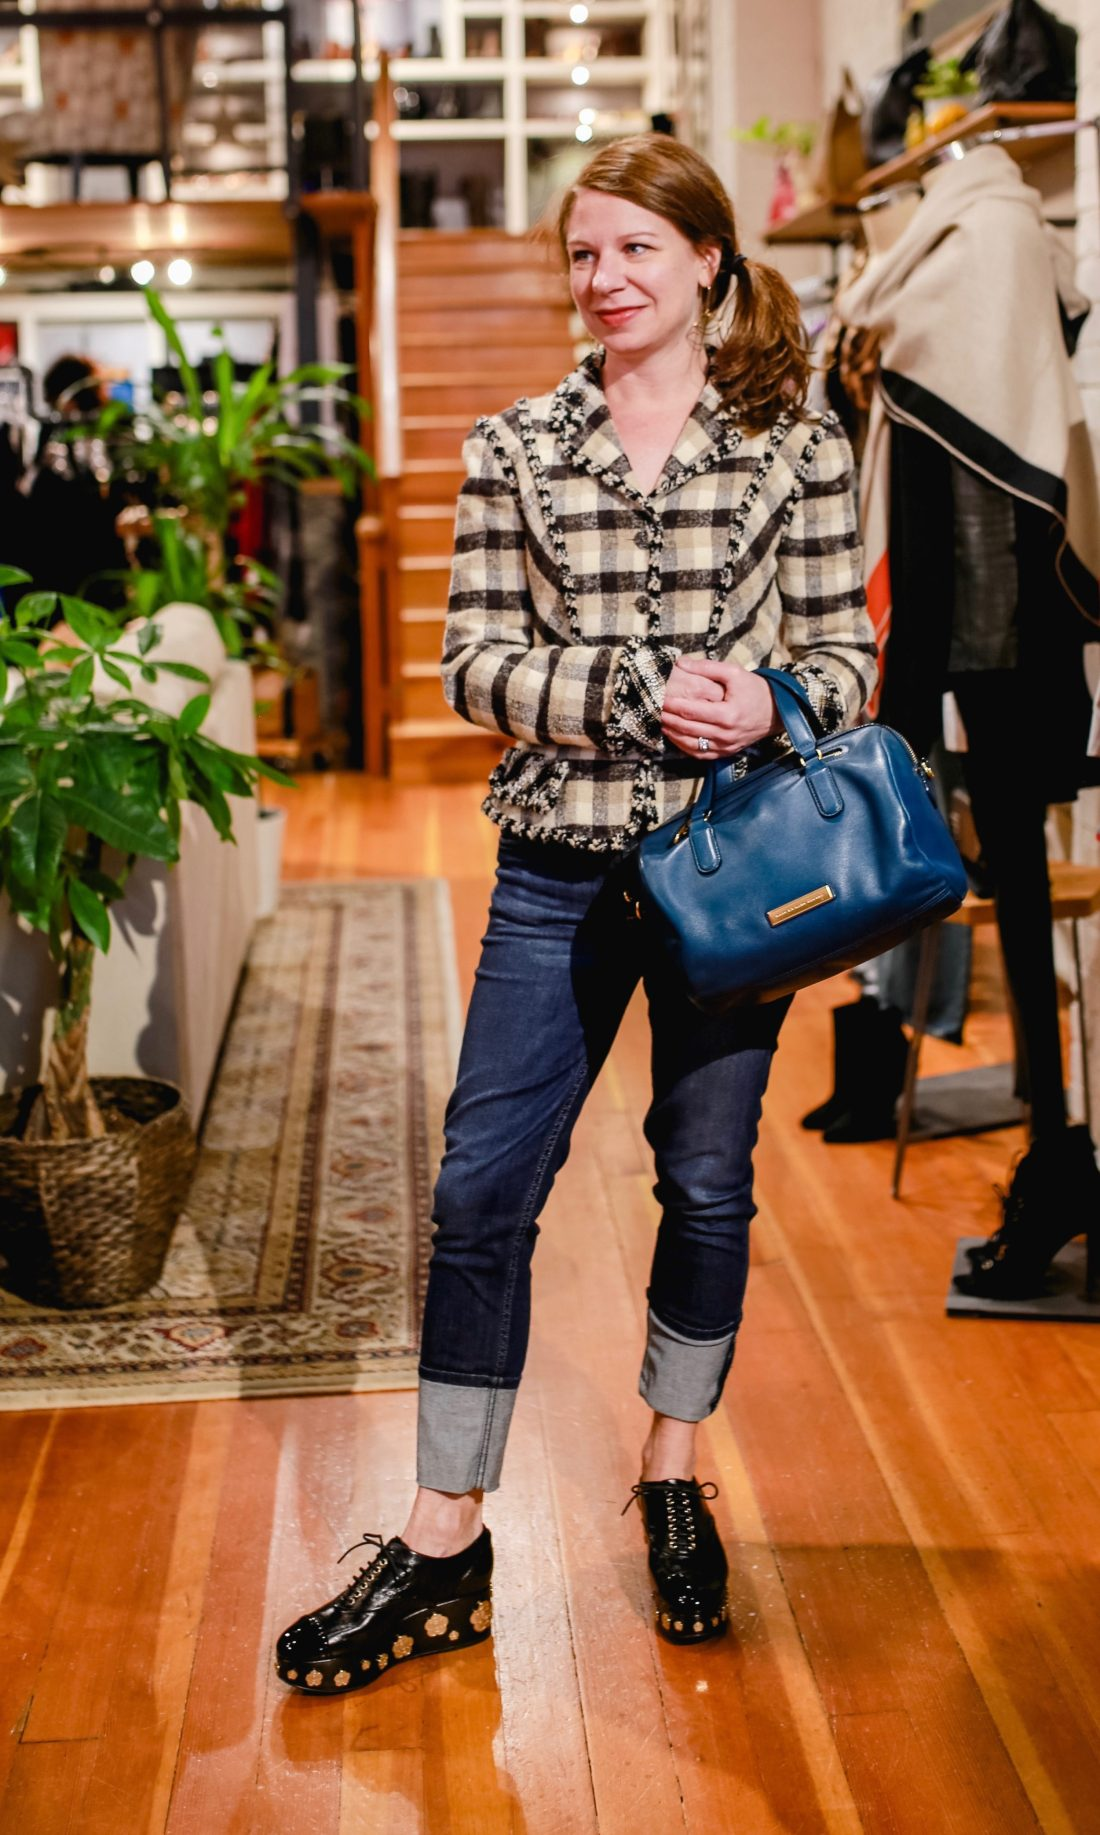 Chanel jacket, designer jeans and accessories at Sell Your Sole Consignment in Seattle.